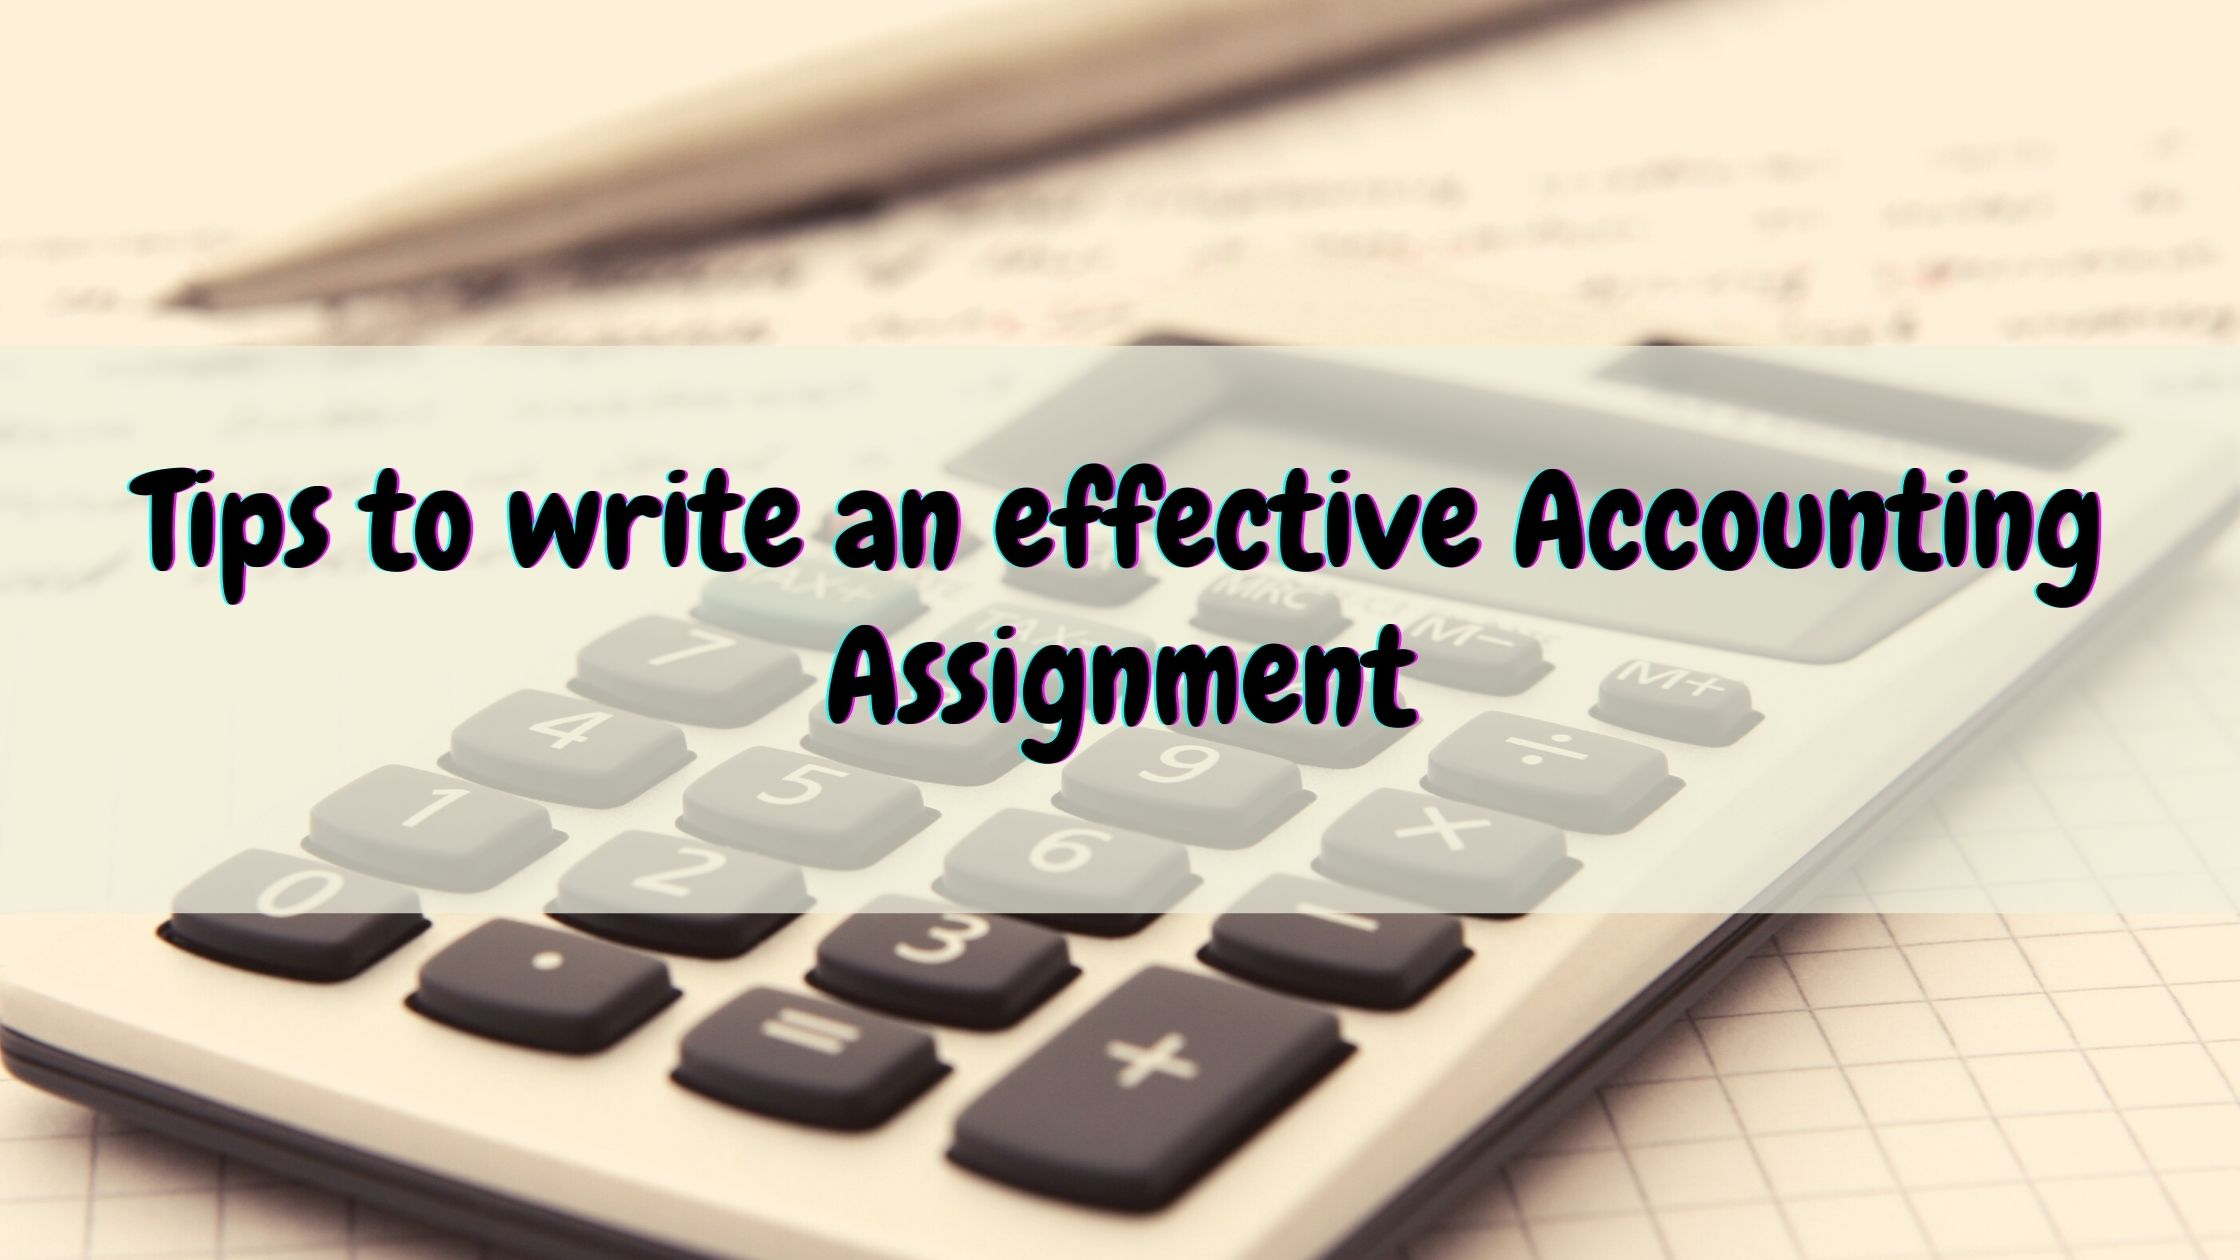 Tips to write an effective Accounting Assignment